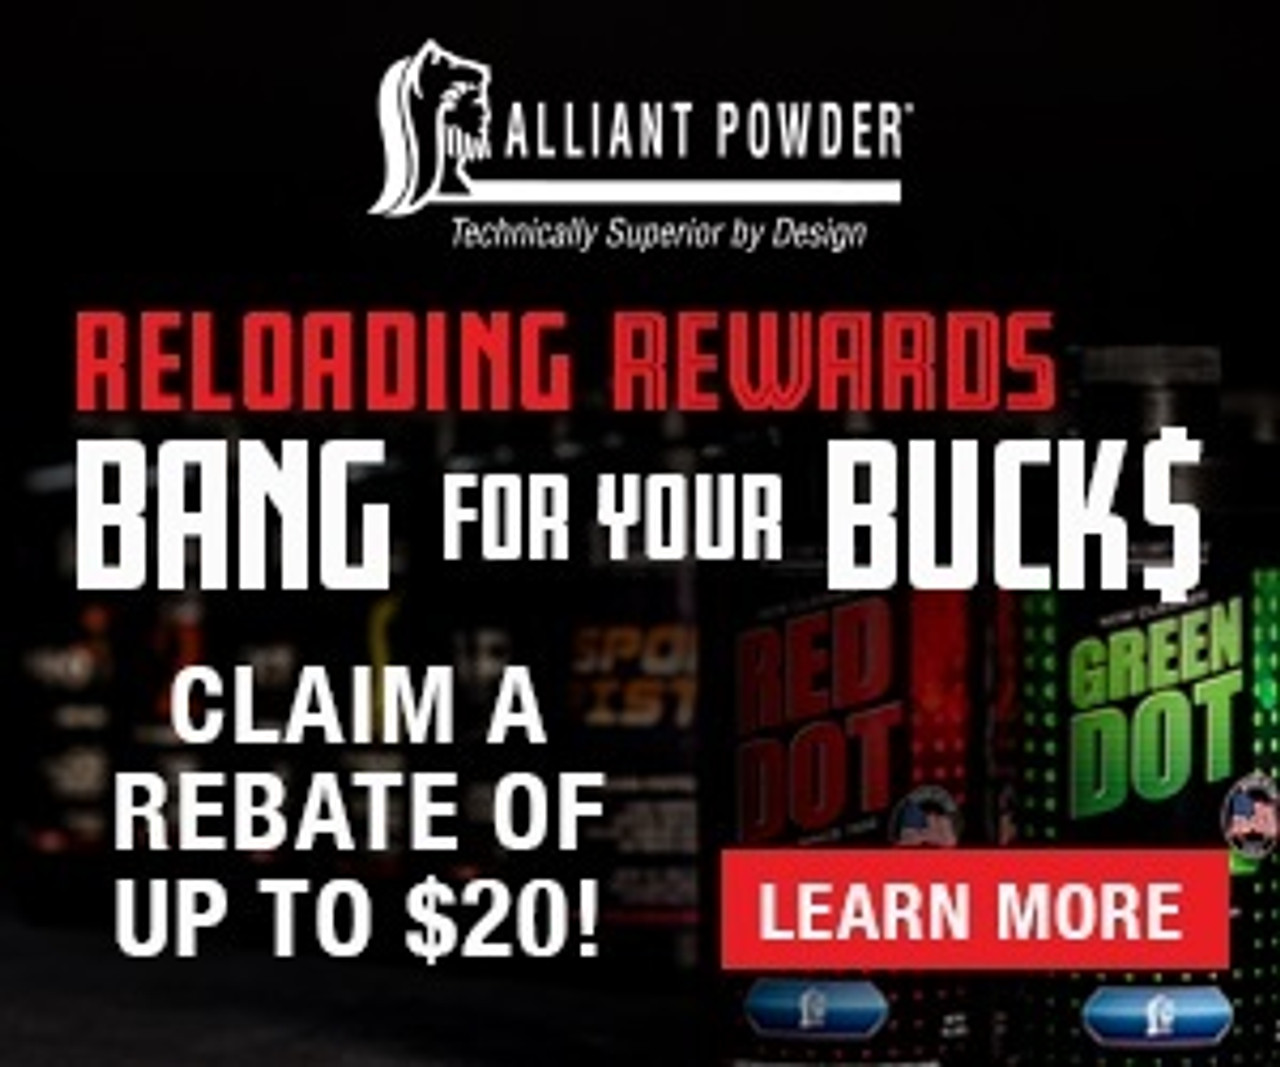 Alliant Powder More Bang For Your Buck$ Rebate